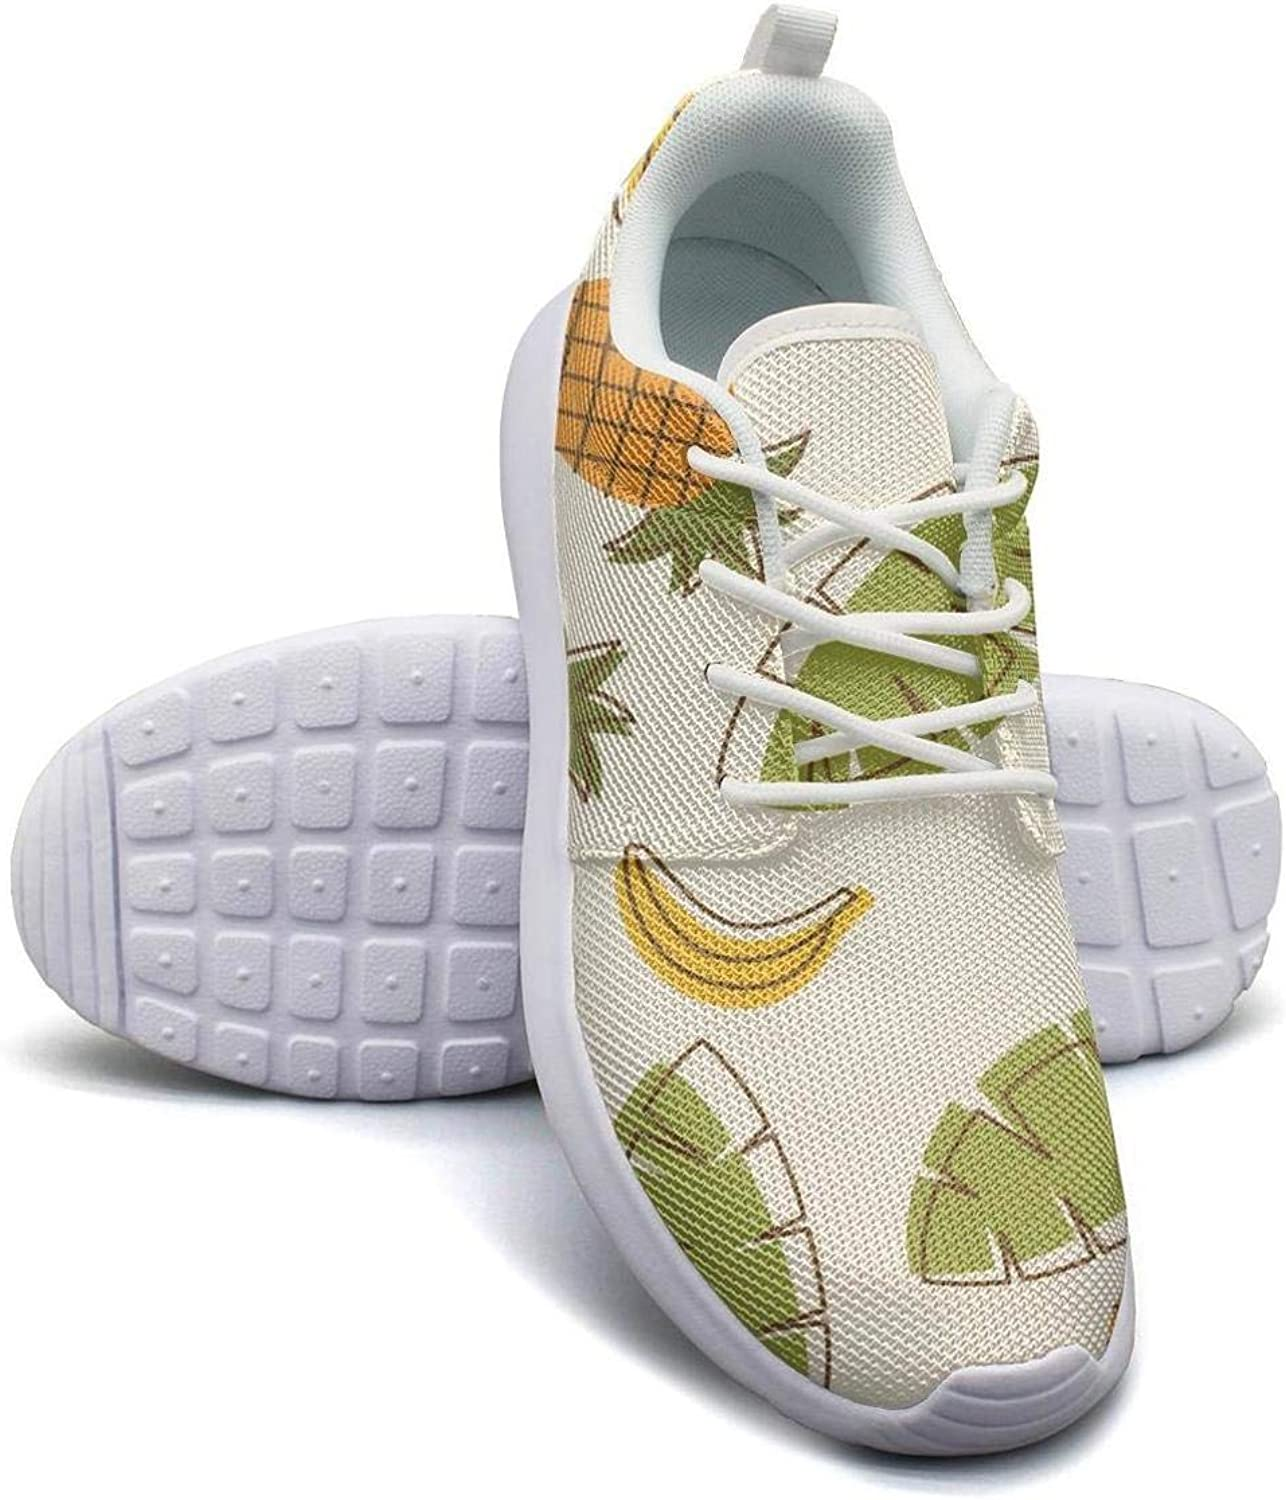 Gjsonmv Pineapple Tropical Fruit mesh Lightweight shoes for Women Casual Sports Badminton Sneakers shoes